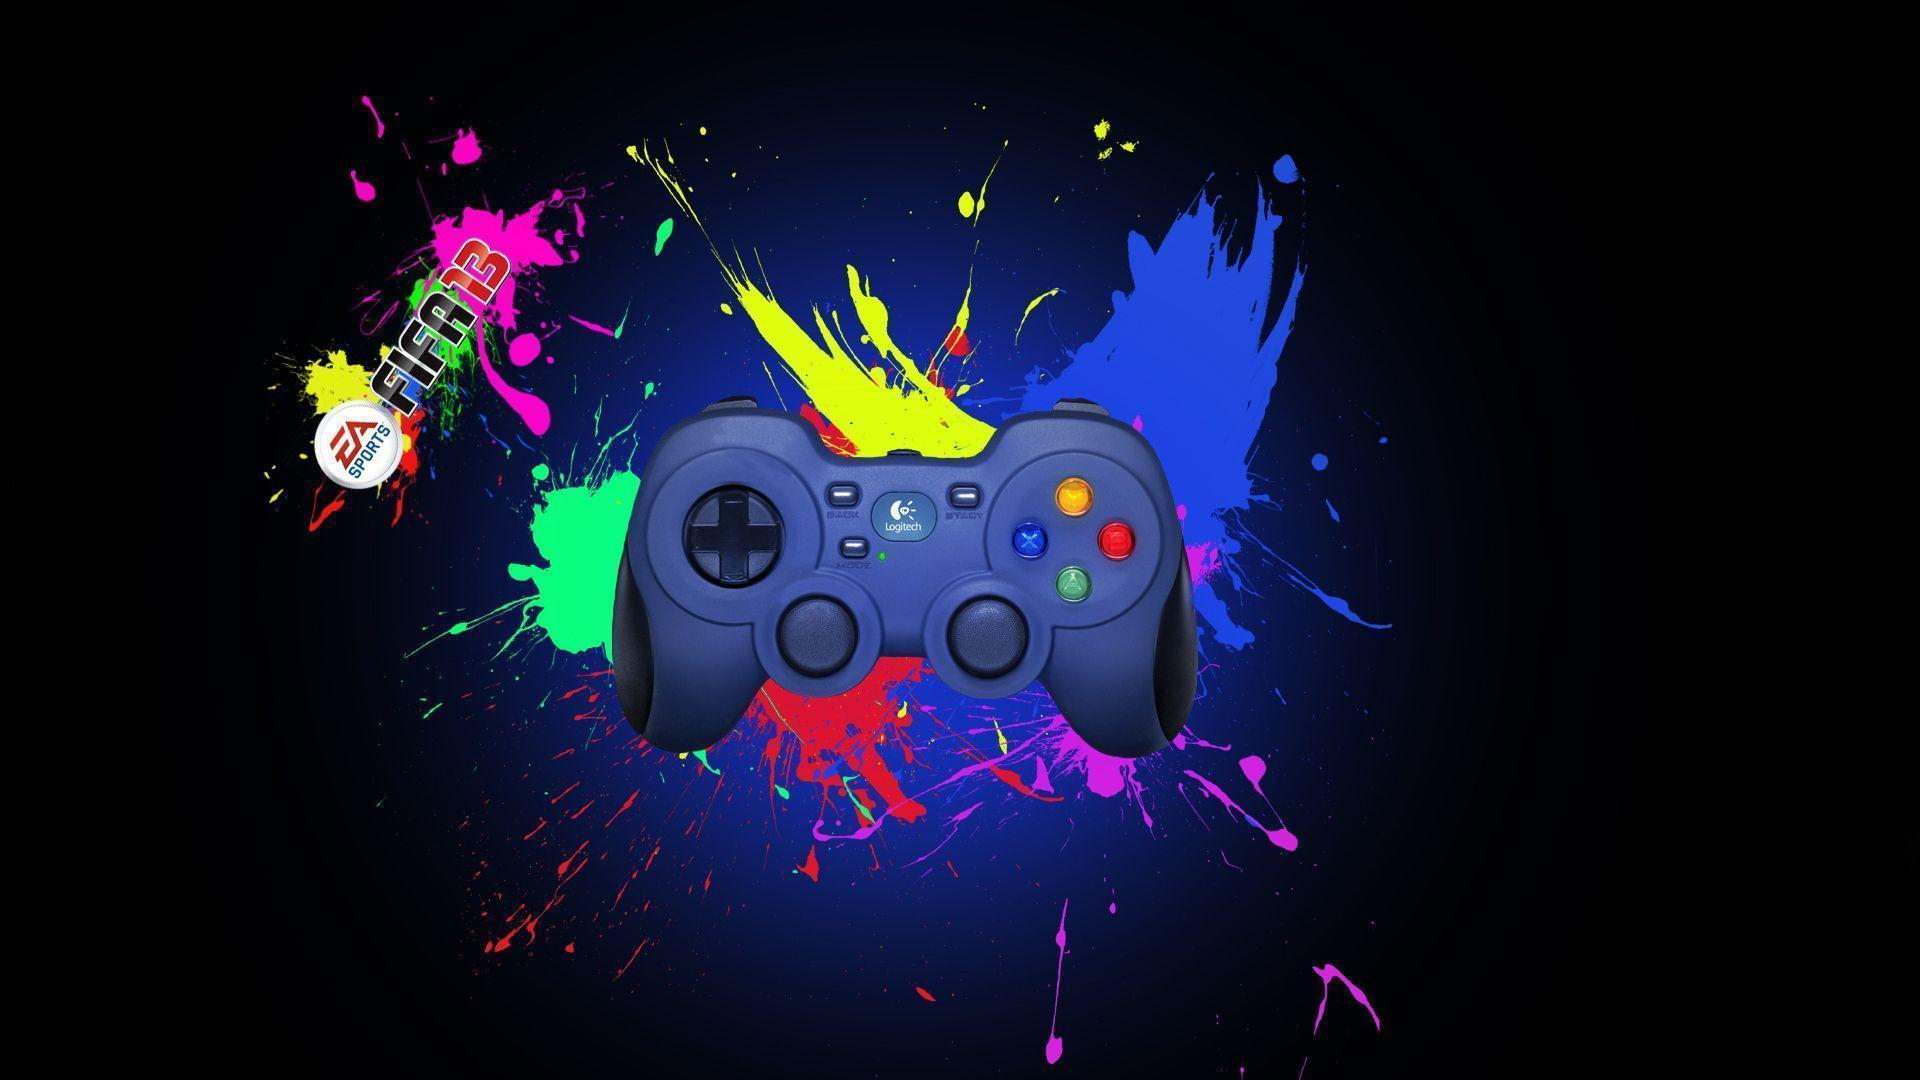 Black background, joystick, Logitech wallpapers and image